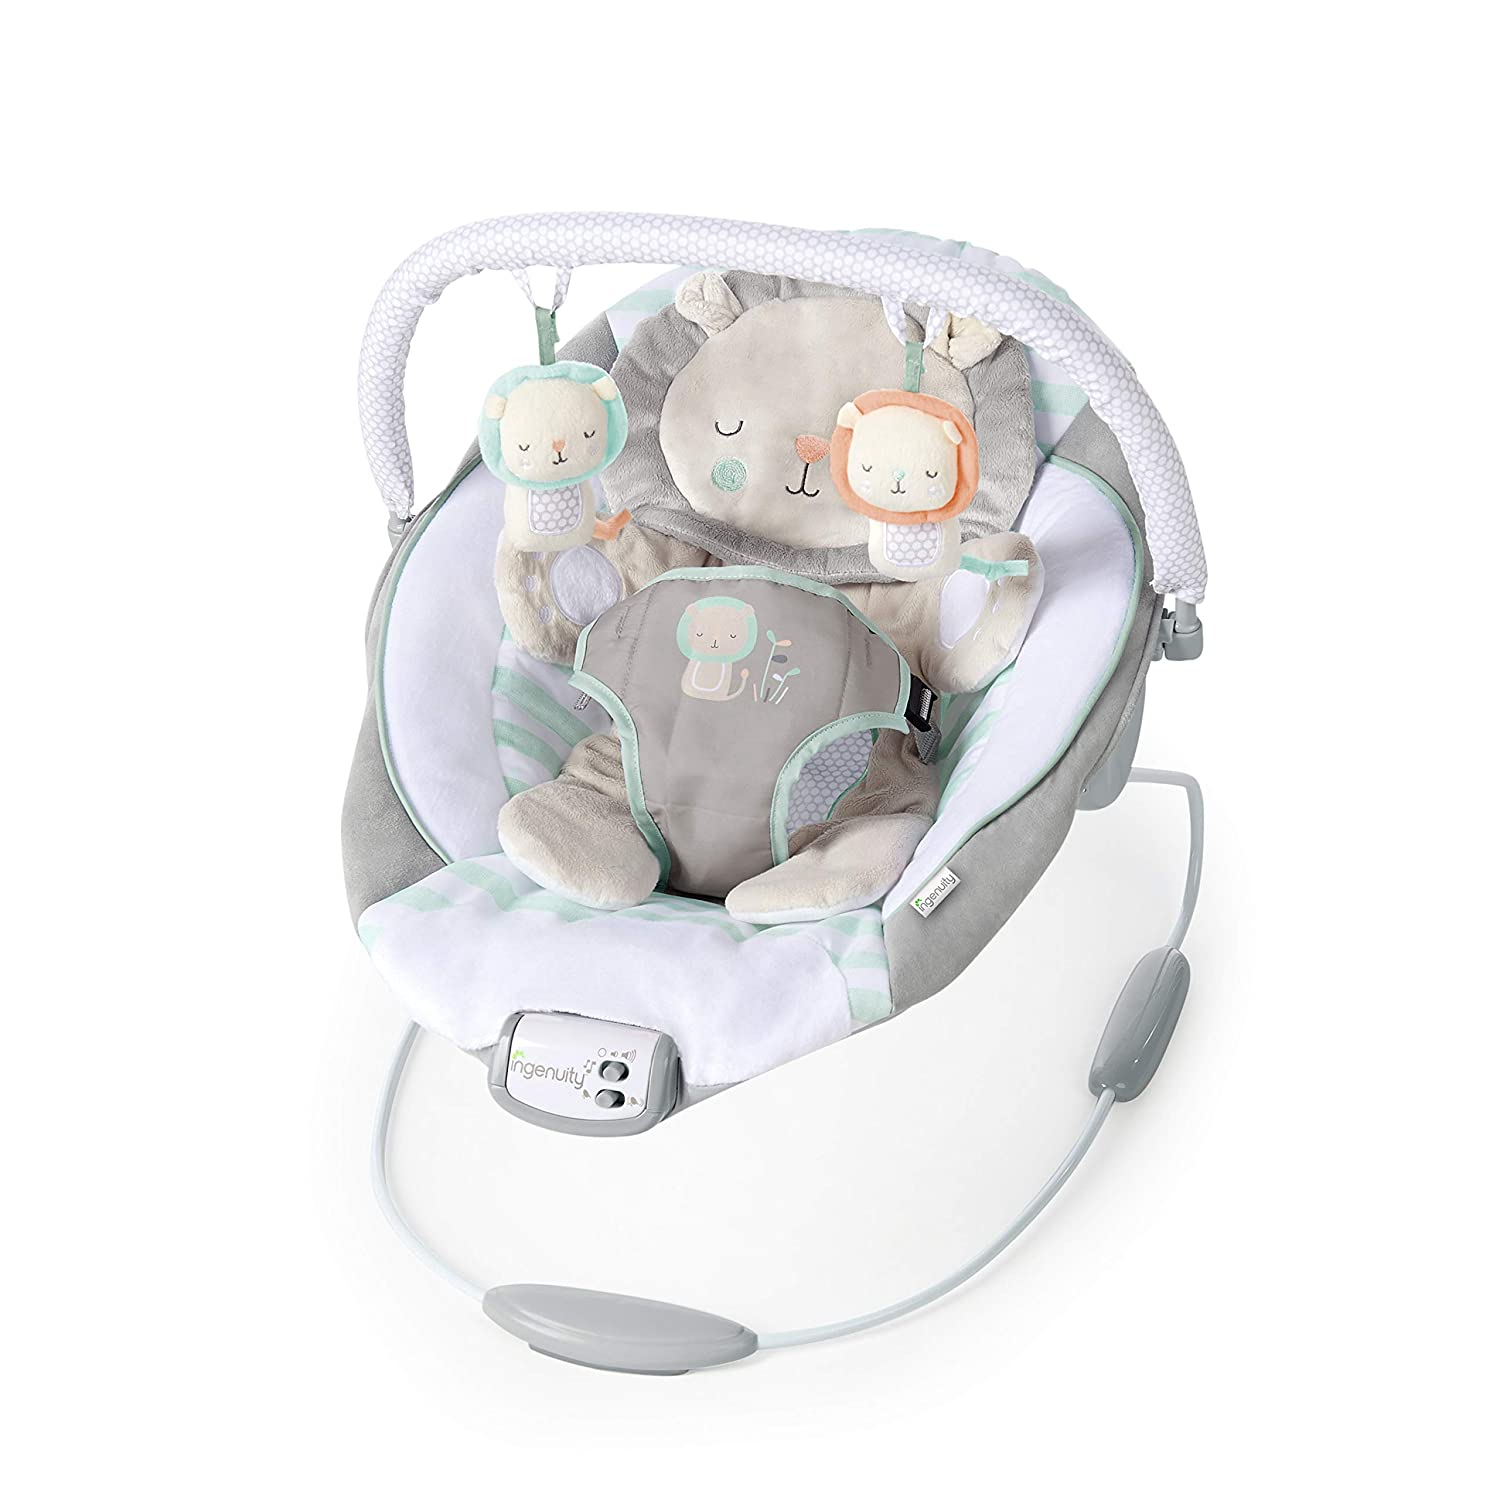 Ingenuity Cradling Baby Bouncer Cozy Kingdom Vibrations Seat Chair